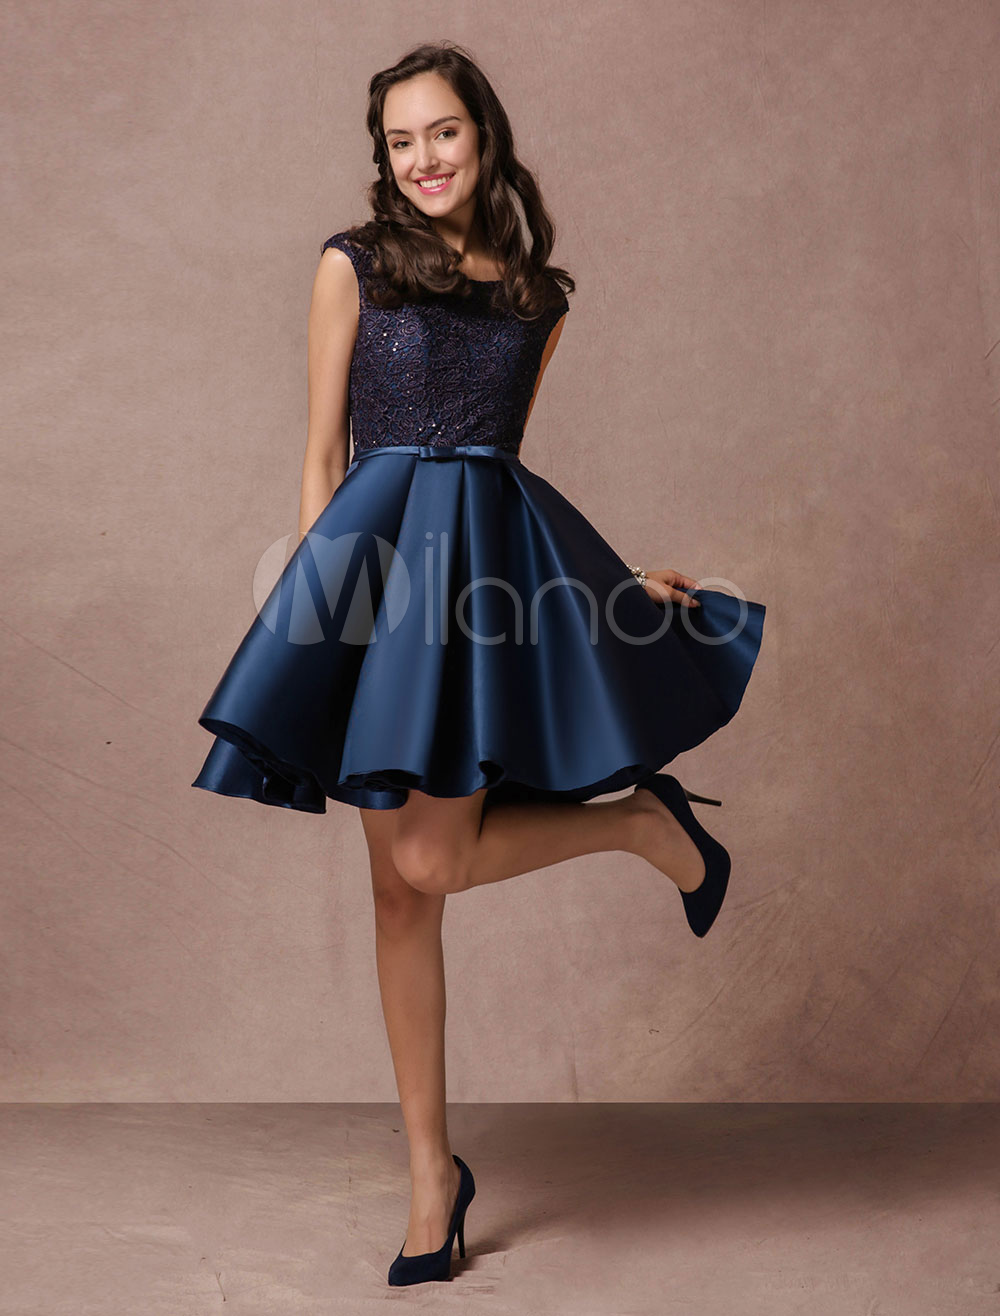 Blue Prom Dress 2018 Short Lace Beading Homecoming Dress Satin Bow Sash Pleated Cocktail Dress